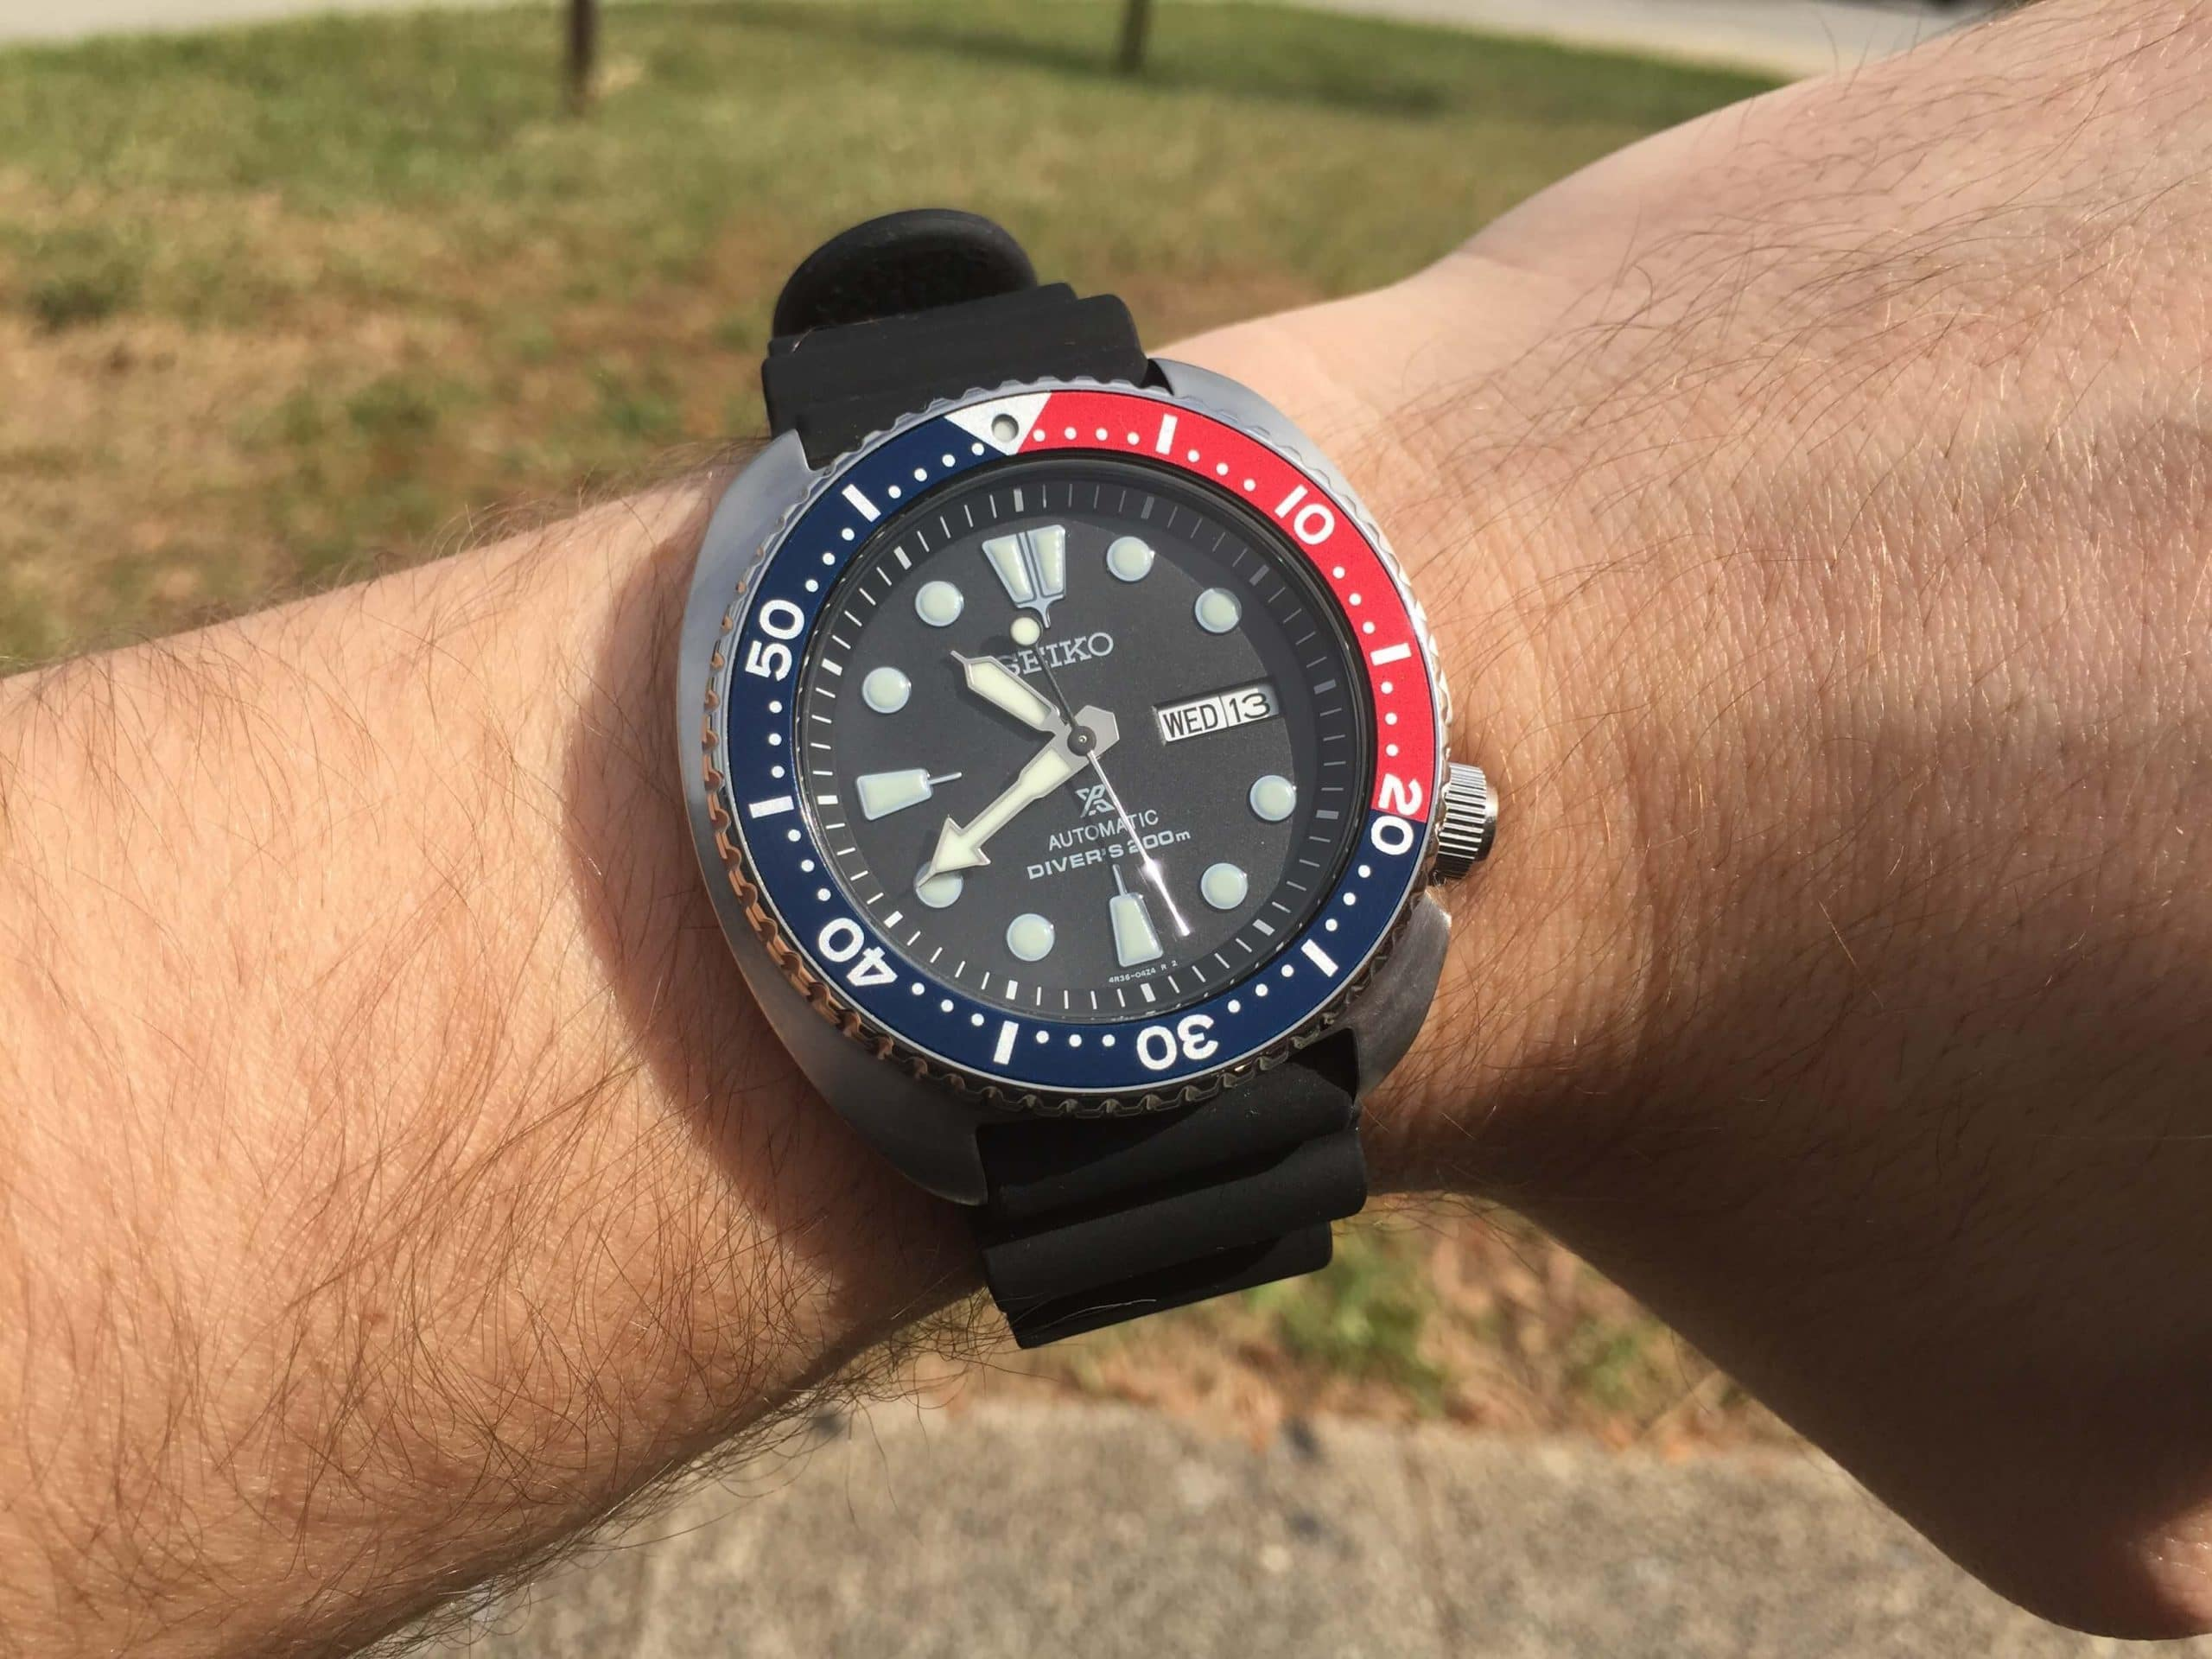 The Best Watch under $300: Seiko Turtle Review